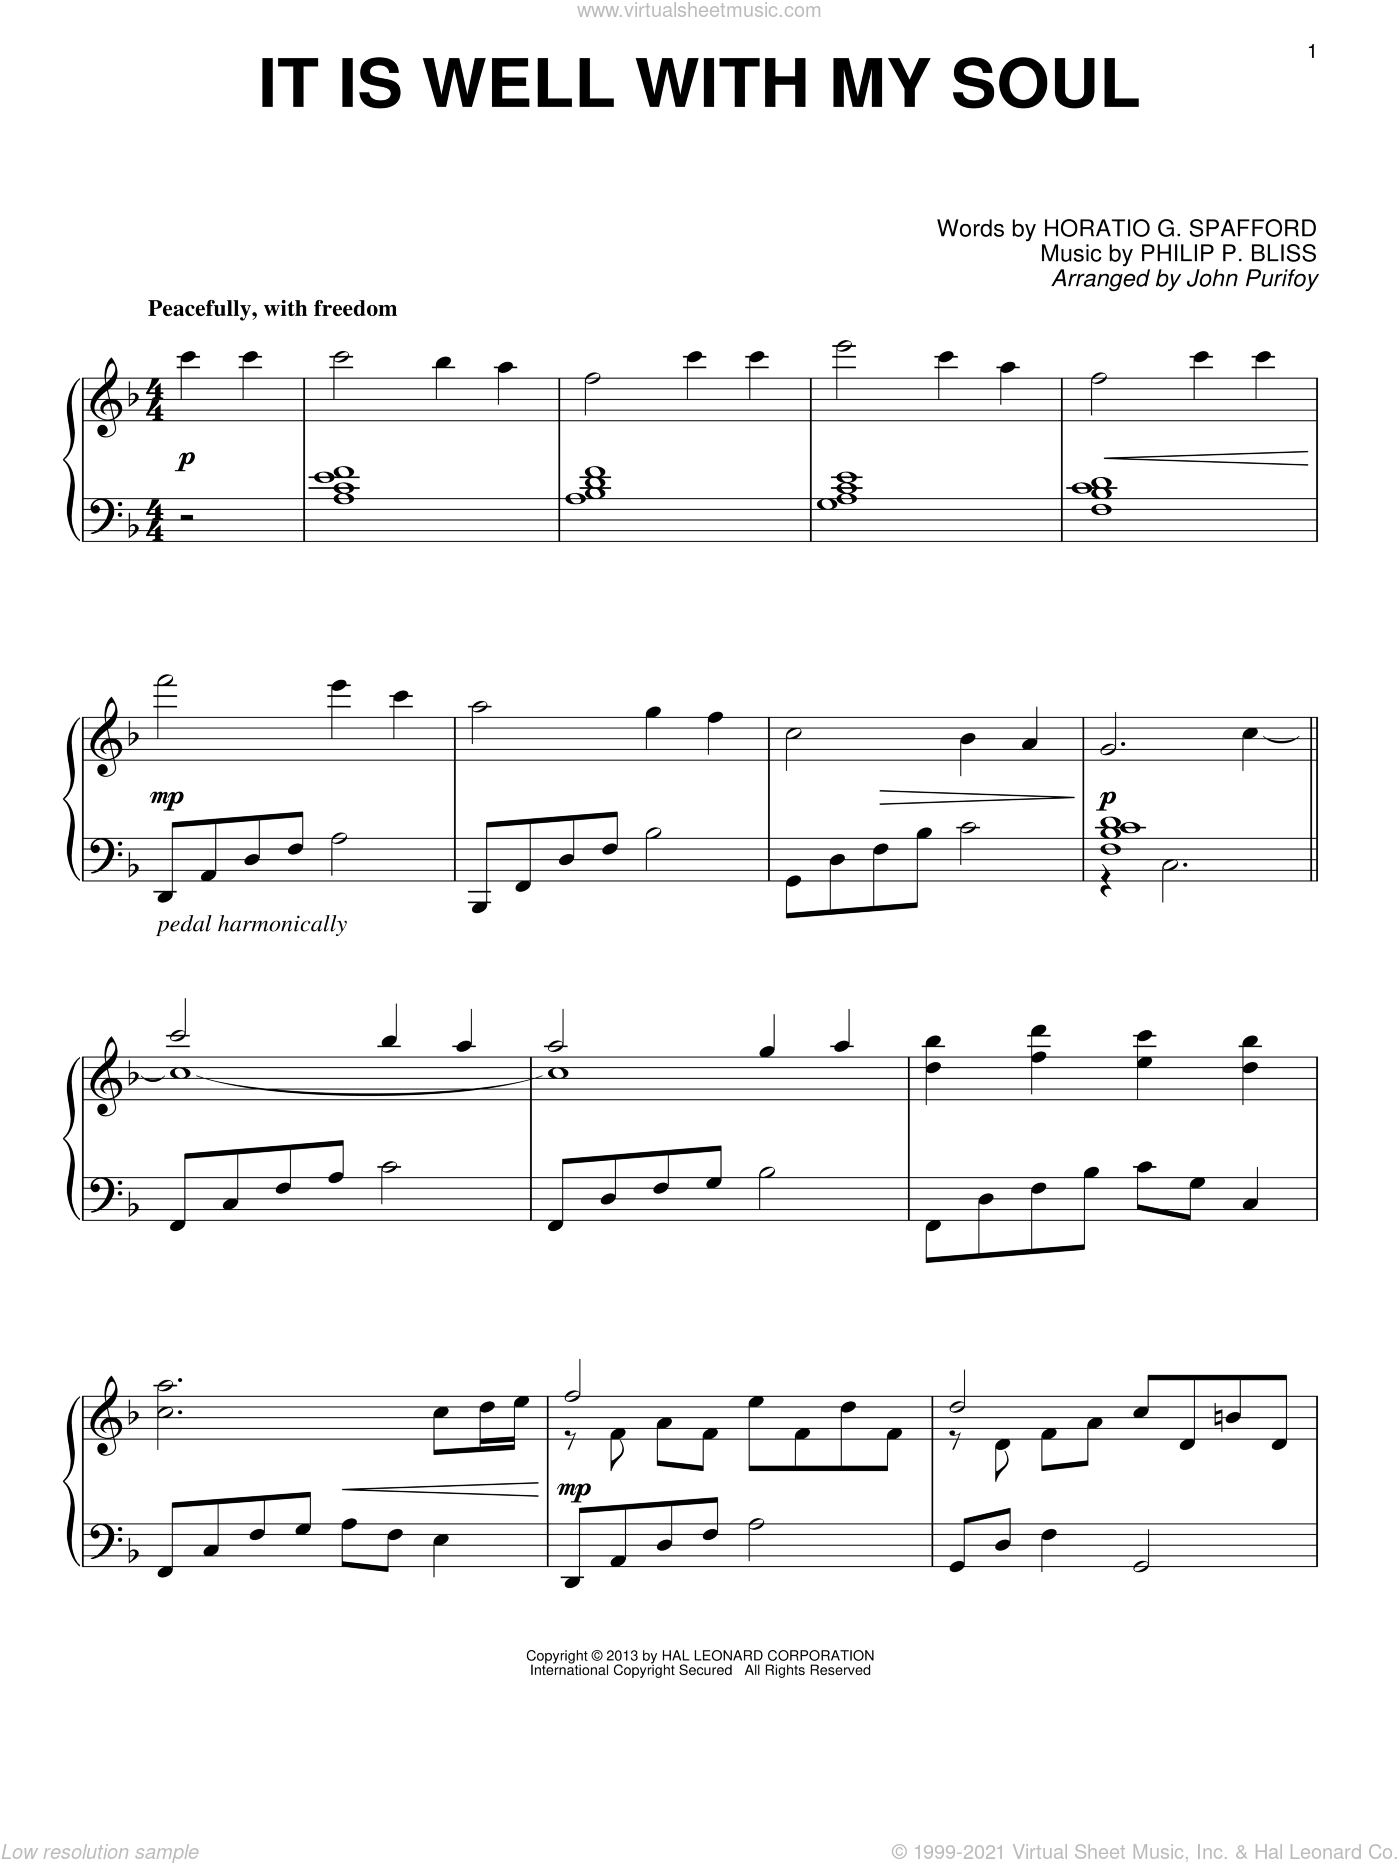 It Is Well With My Soul sheet music for piano solo by John Purifoy